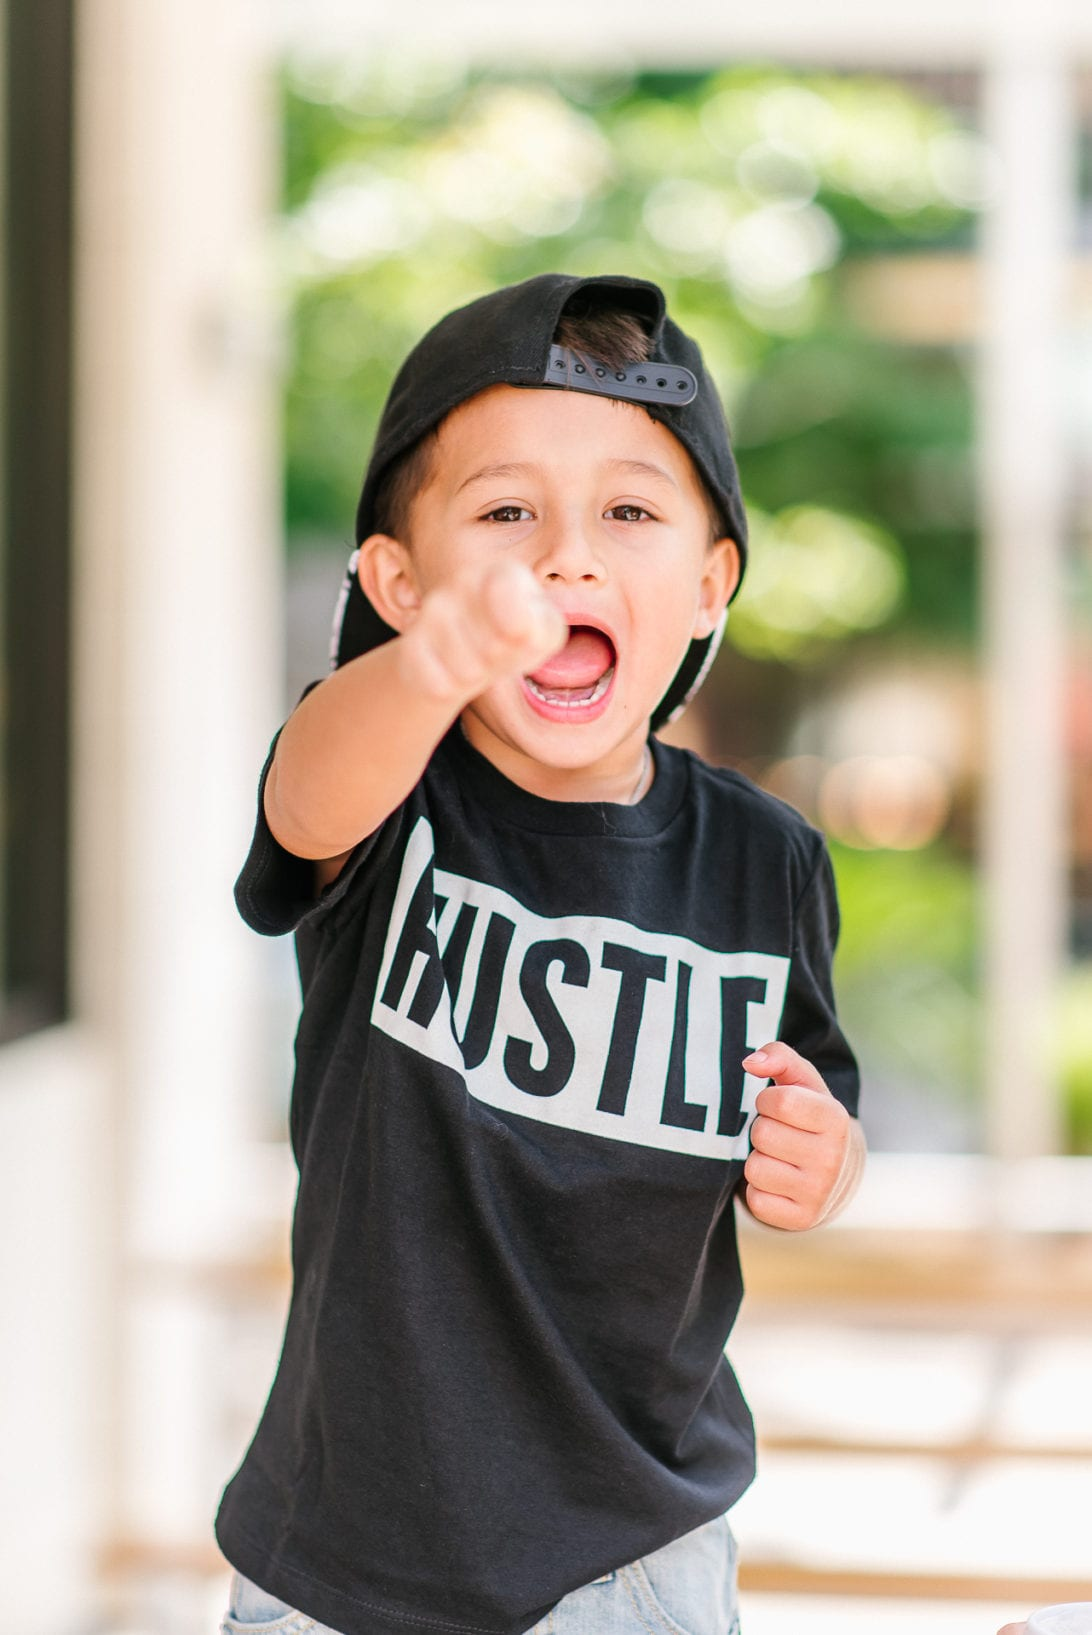 graphic tees for toddlers, toddler boy fashion, urban boy style